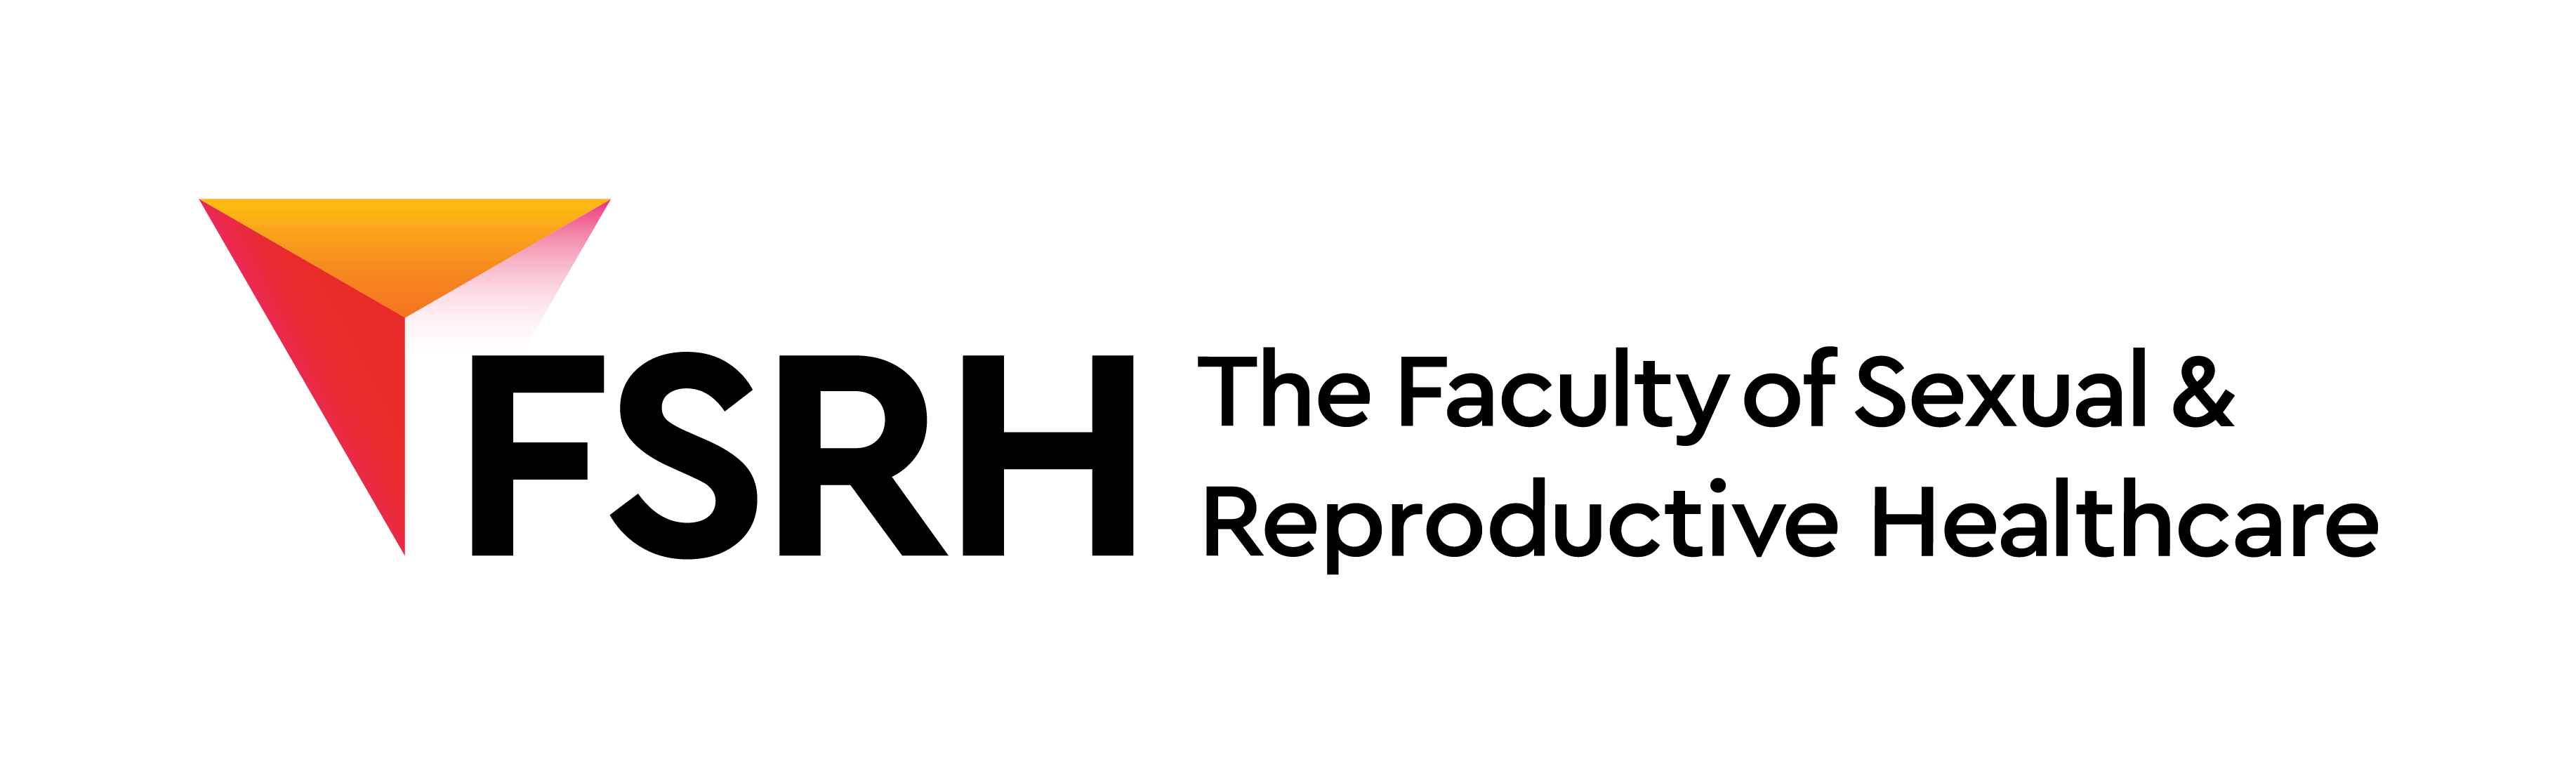 The Faculty of Sexual & Reproductive Healthcare logo